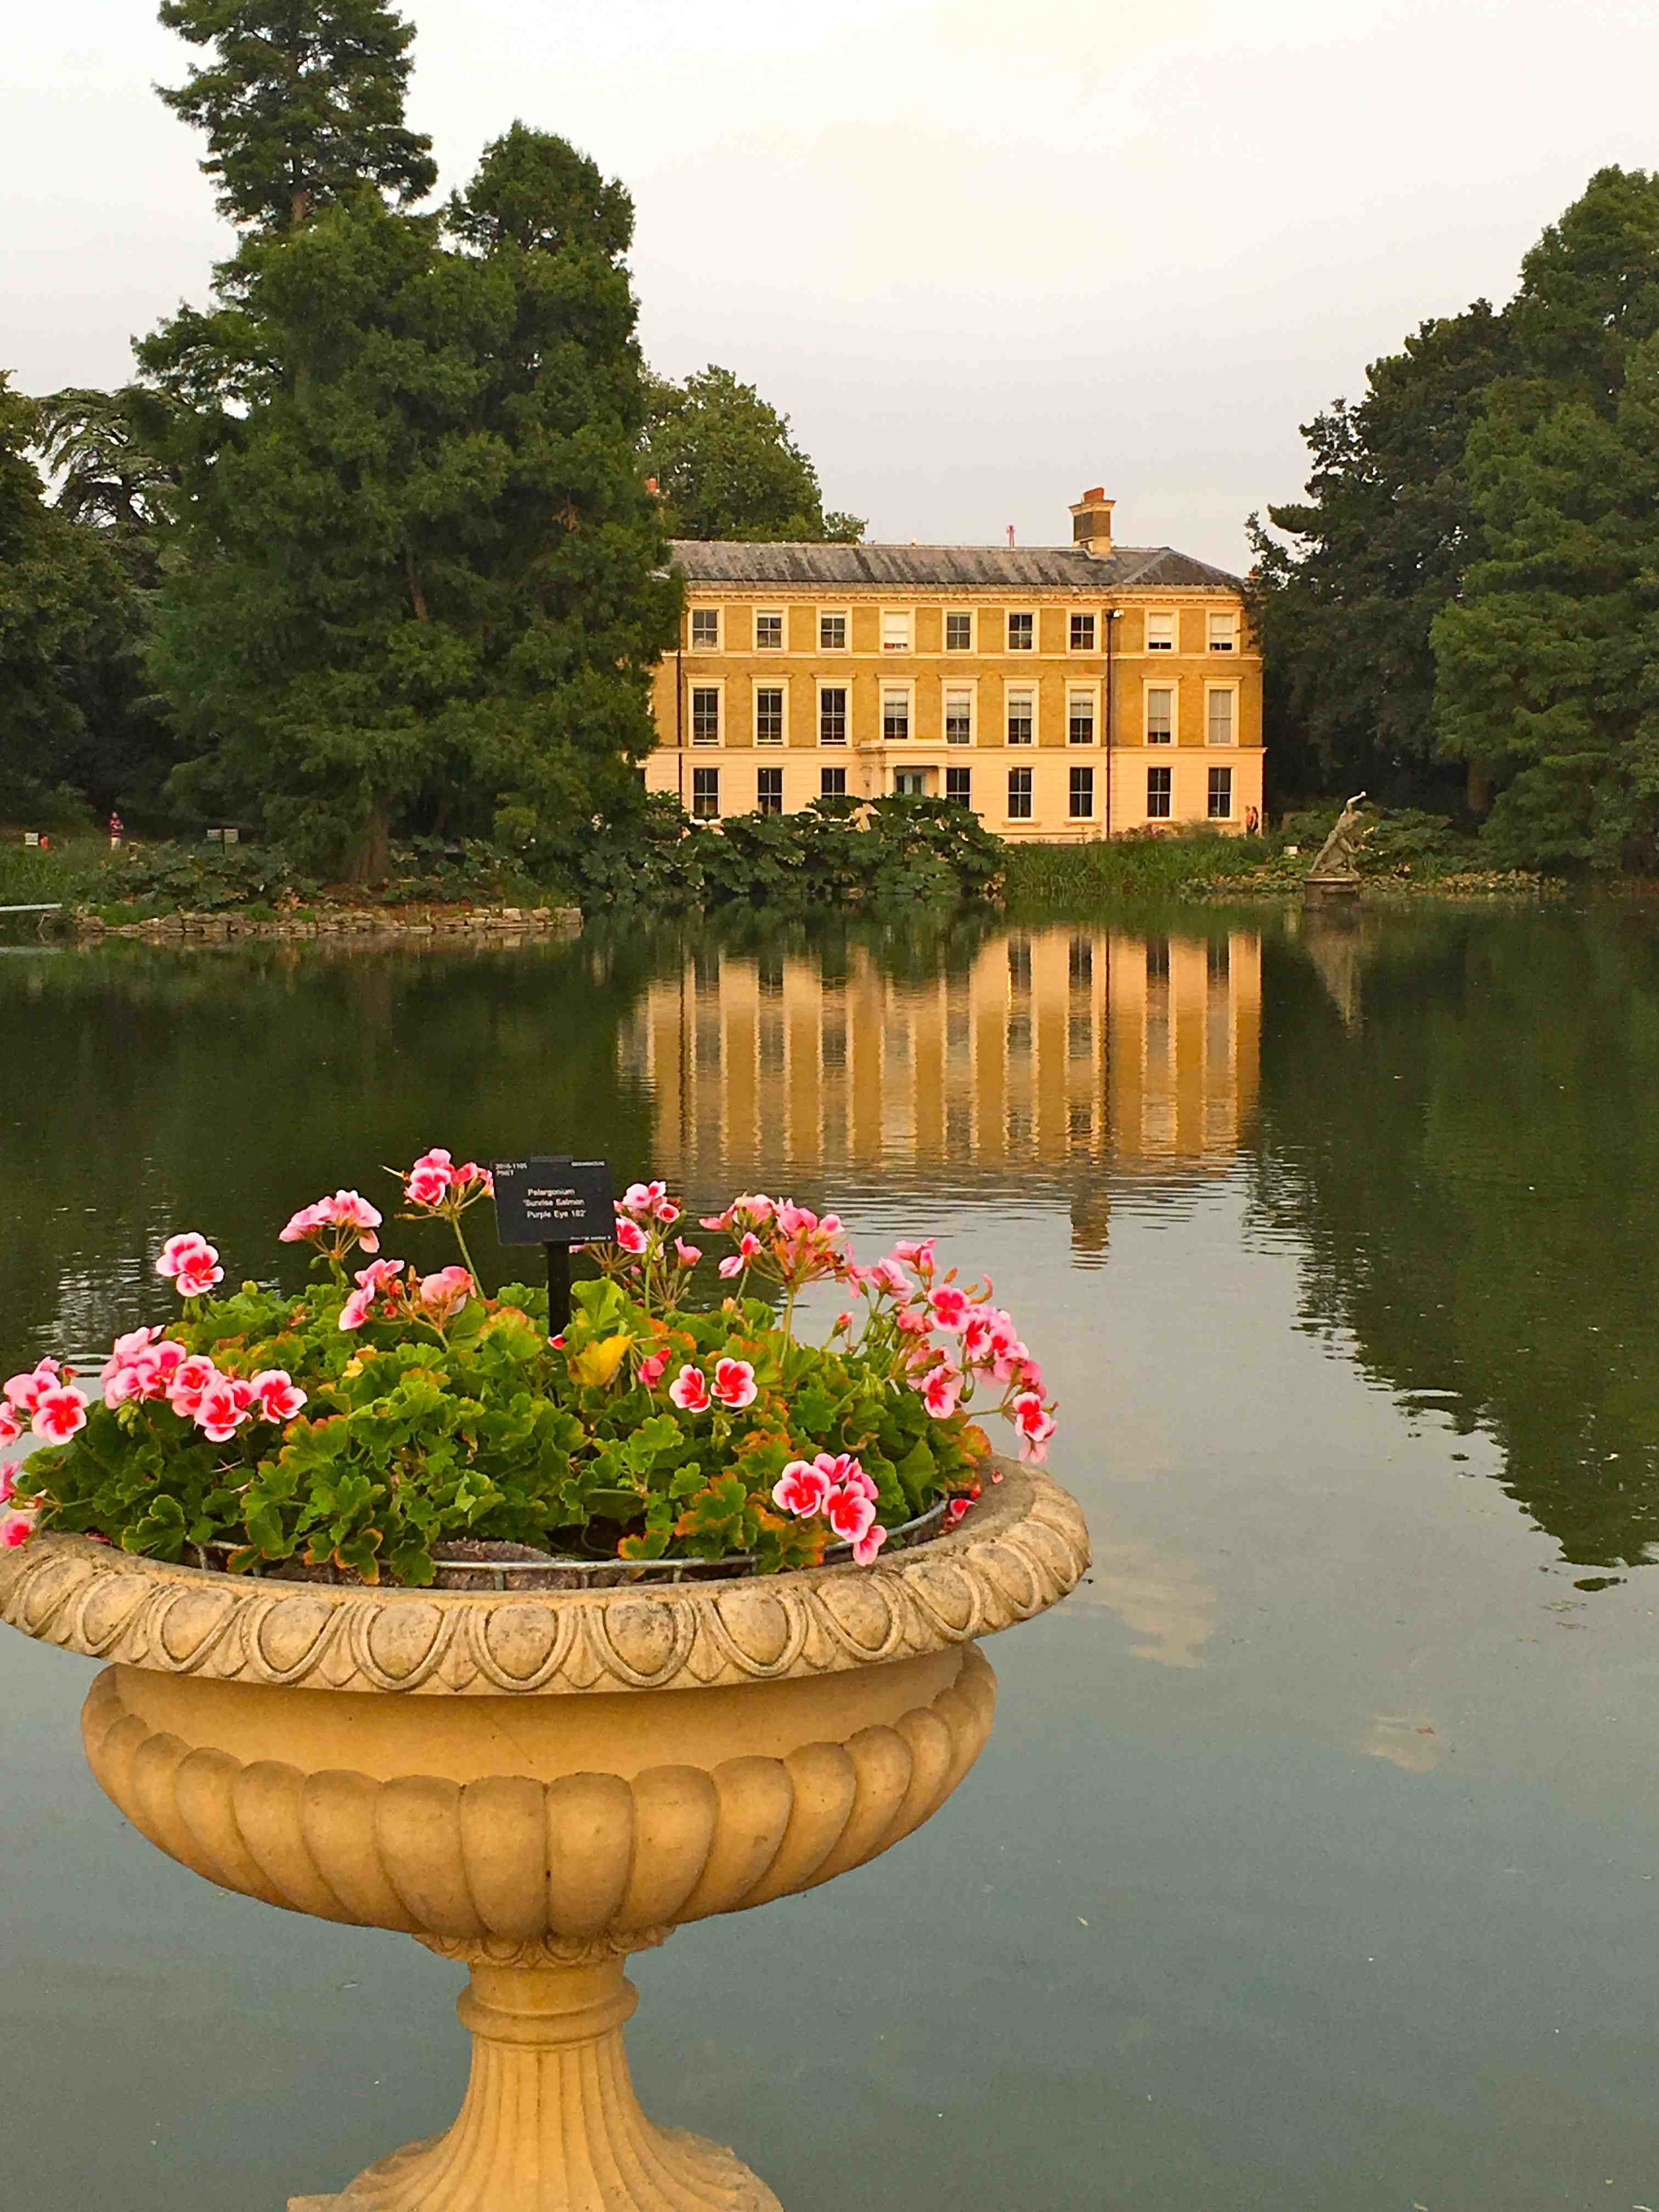 Kew Gardens and Palace Tickets in London | tripexplore.in